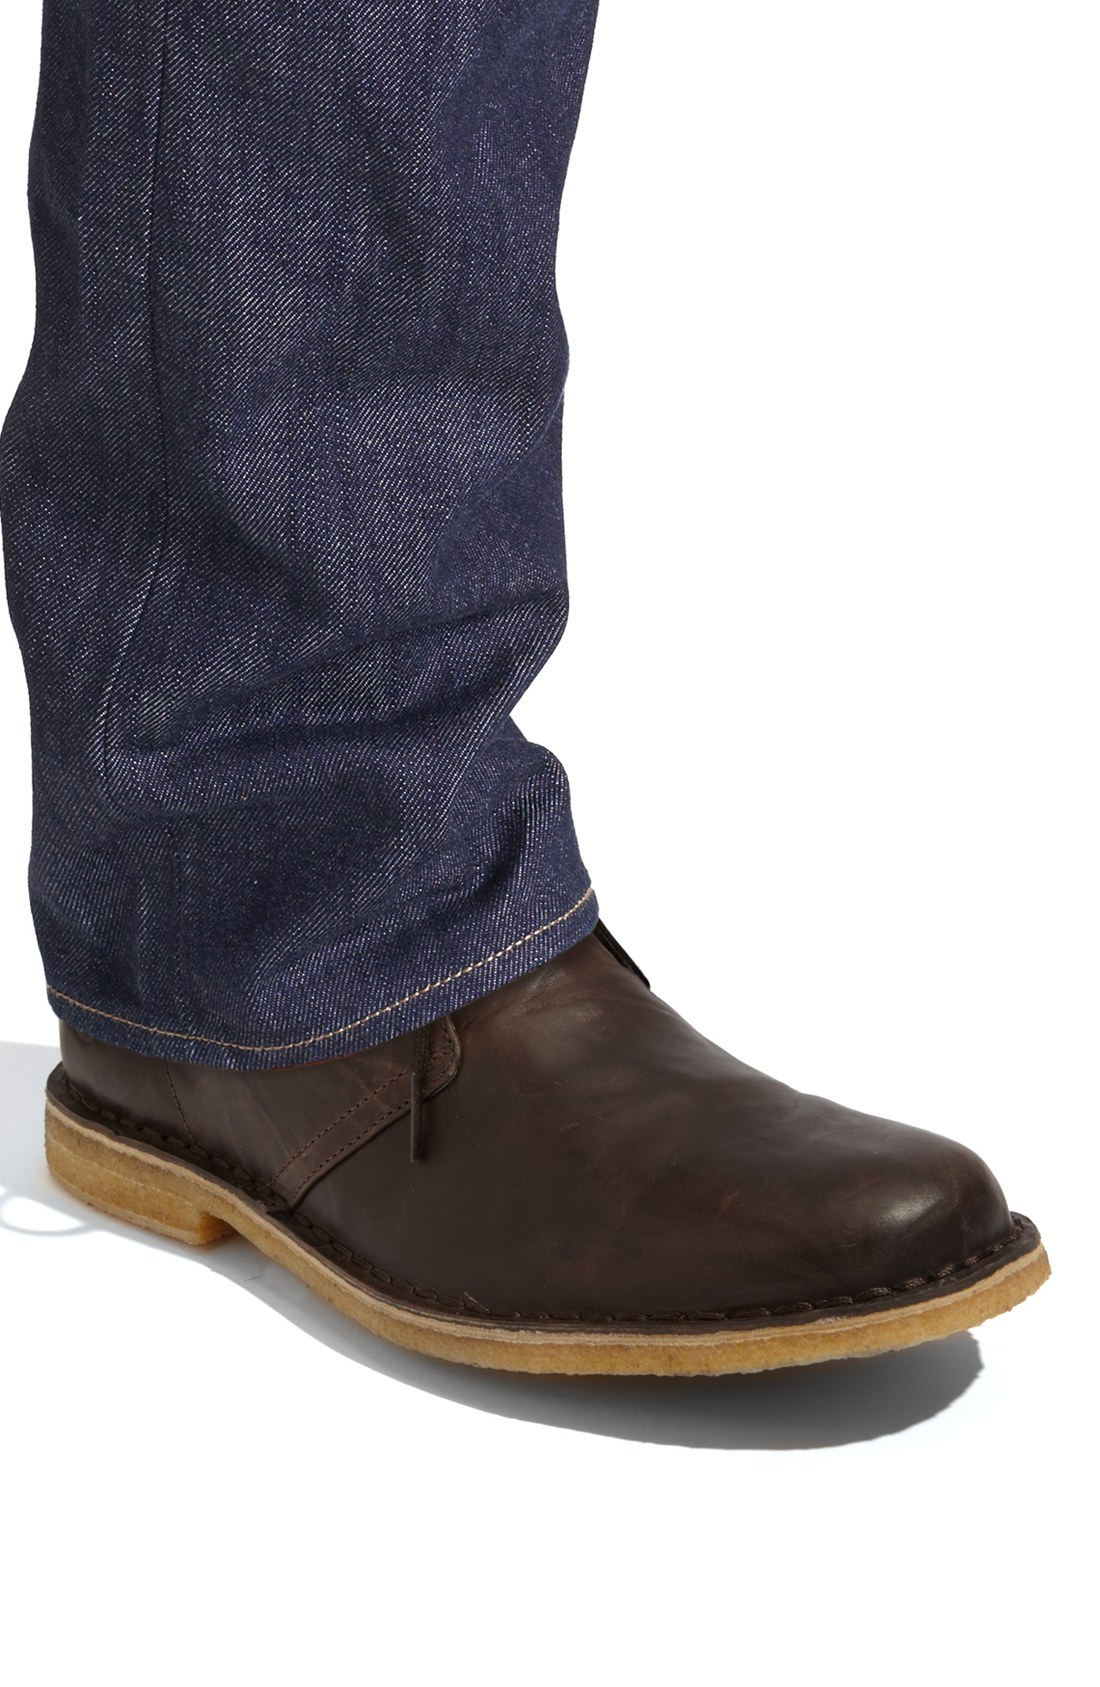 If you want good 'Ugg Boots', well-made 'Australian Boots' with all the qualities that made the original Australian Sheepskin Boot so desirable around the world and established the reputation for quality and comfort you'll want to make sure that your Uggs are made from the finest % Australian Merino Sheepskin and Made in Australia. Beware of cheap imitations.